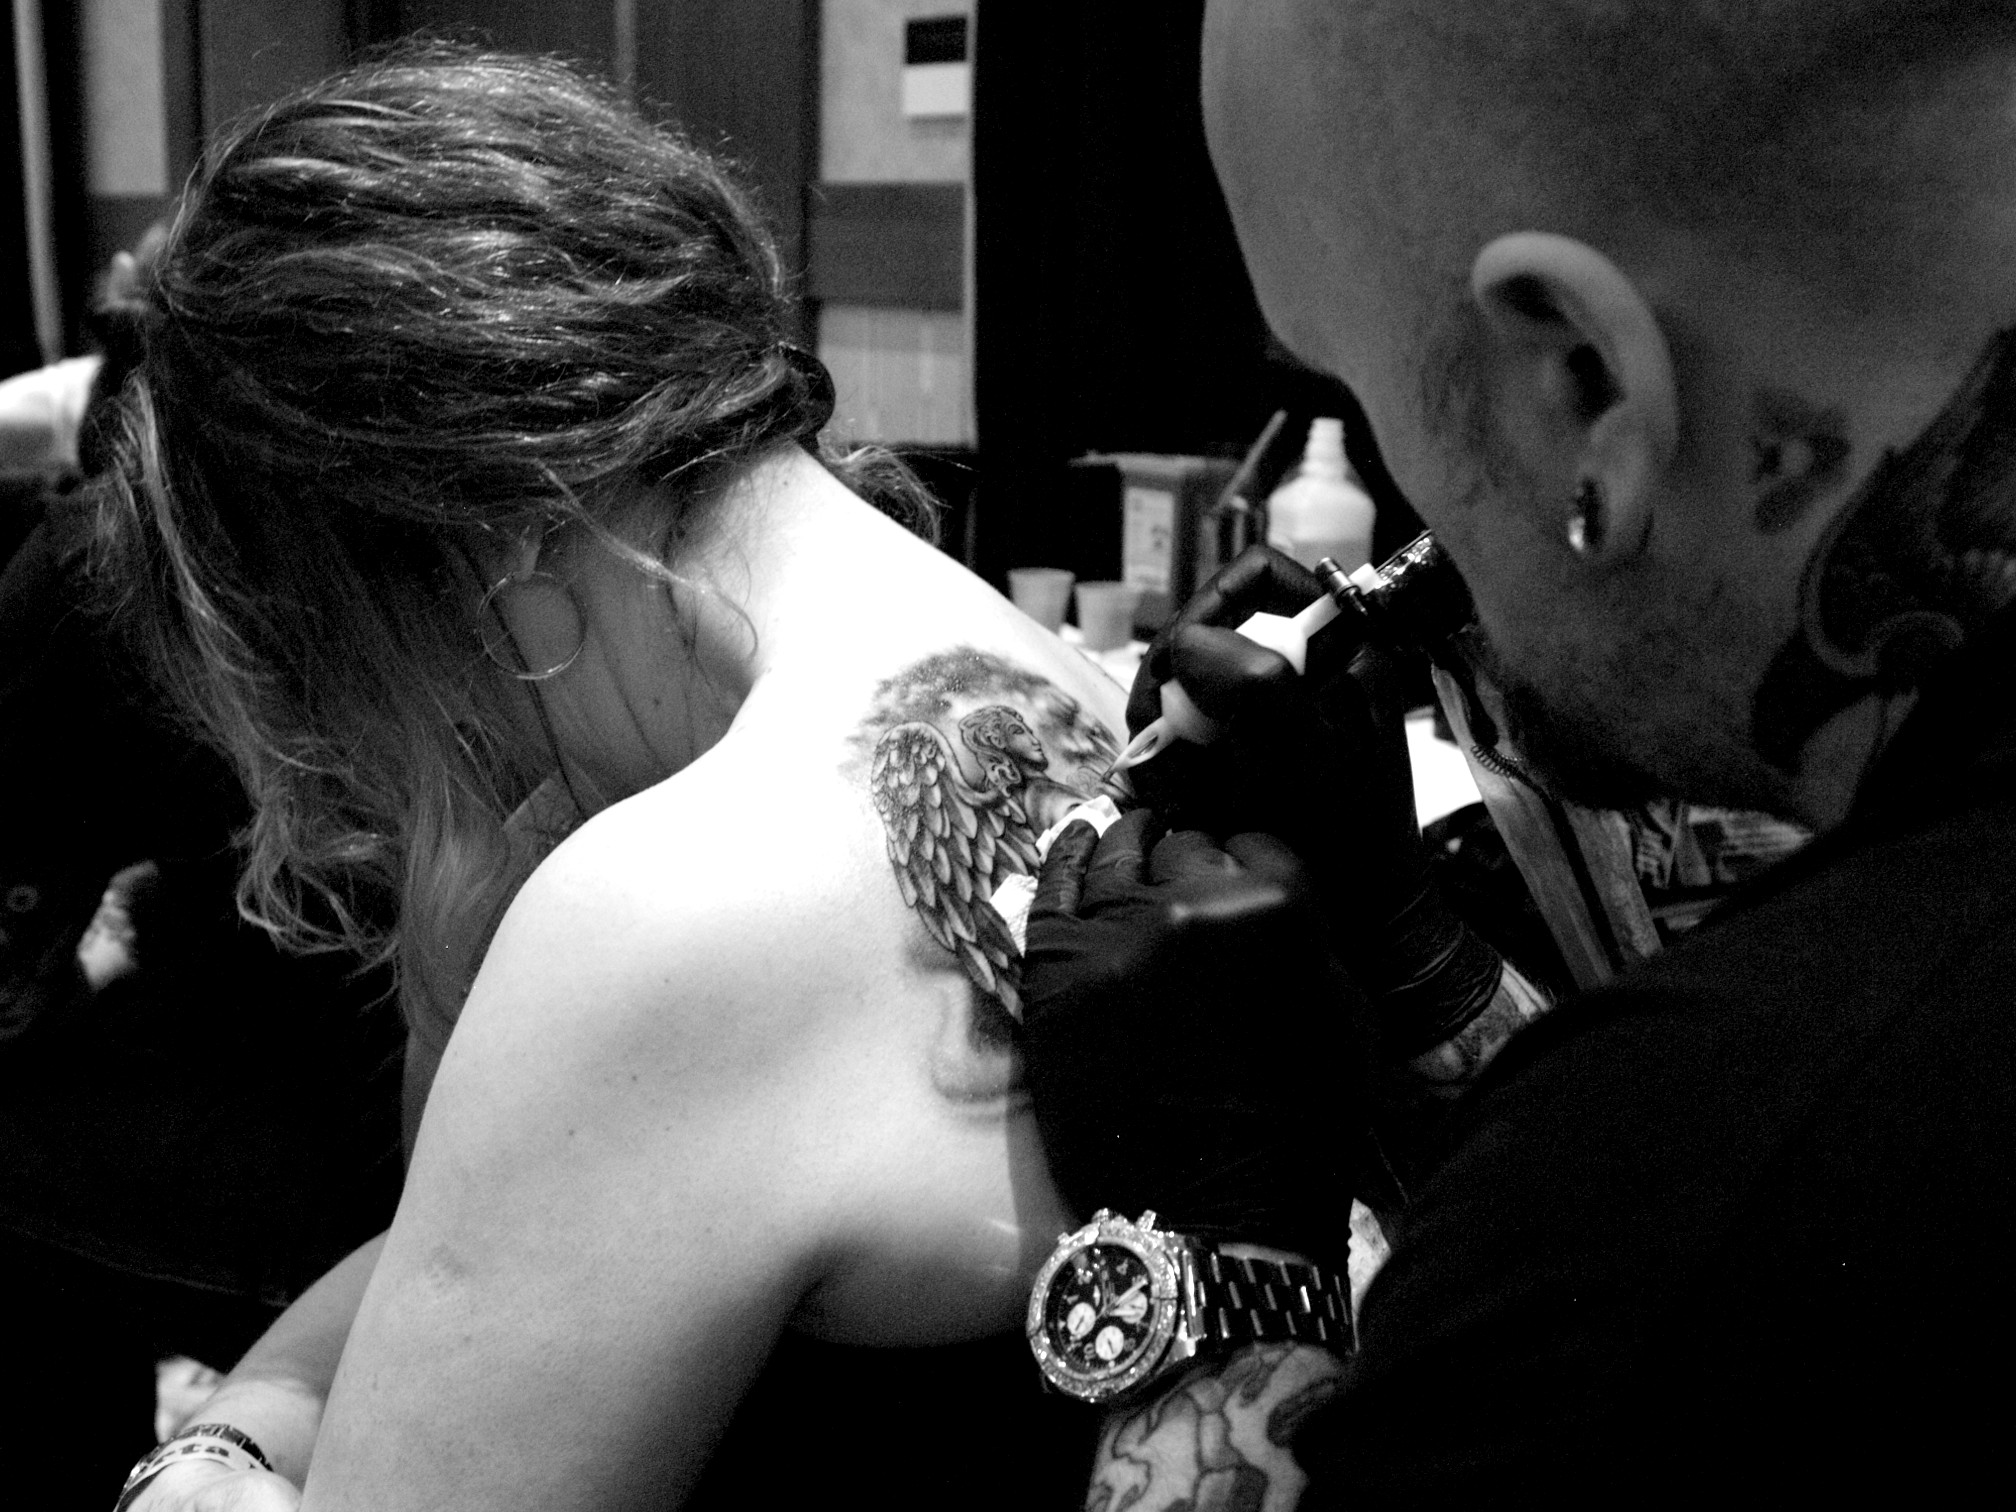 Bj Betts tattooing a guardian angel.